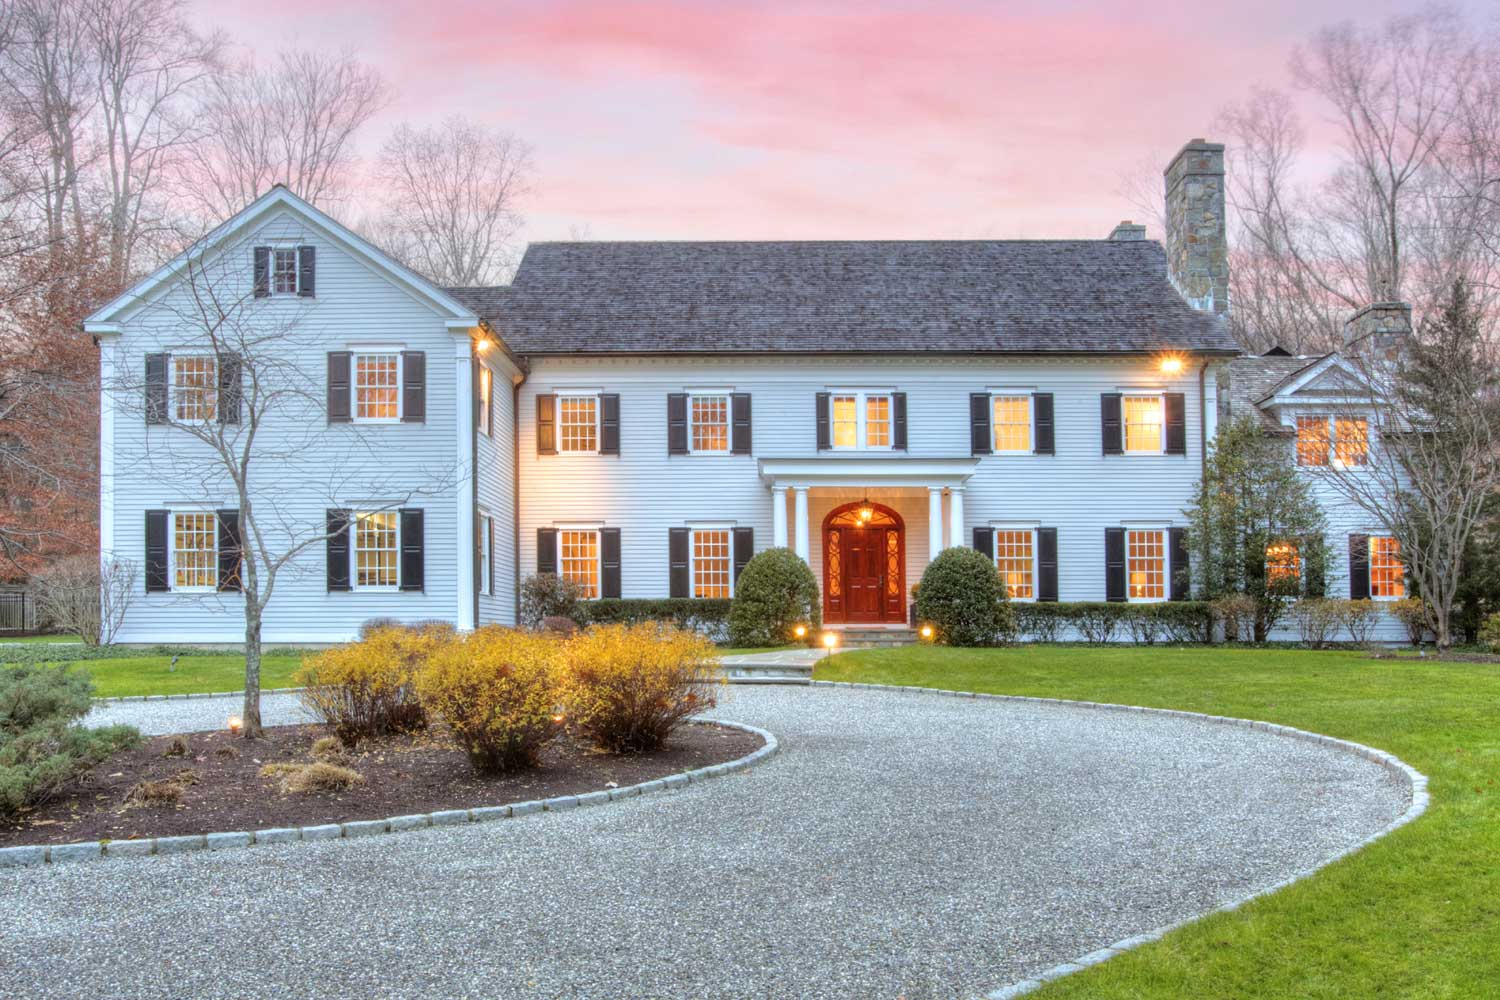 <b>Darien, Connecticut</b><br/><i>5 Bedrooms, 8,000 sq. ft.</i><br/>Five-bedroom Georgian-colonial home